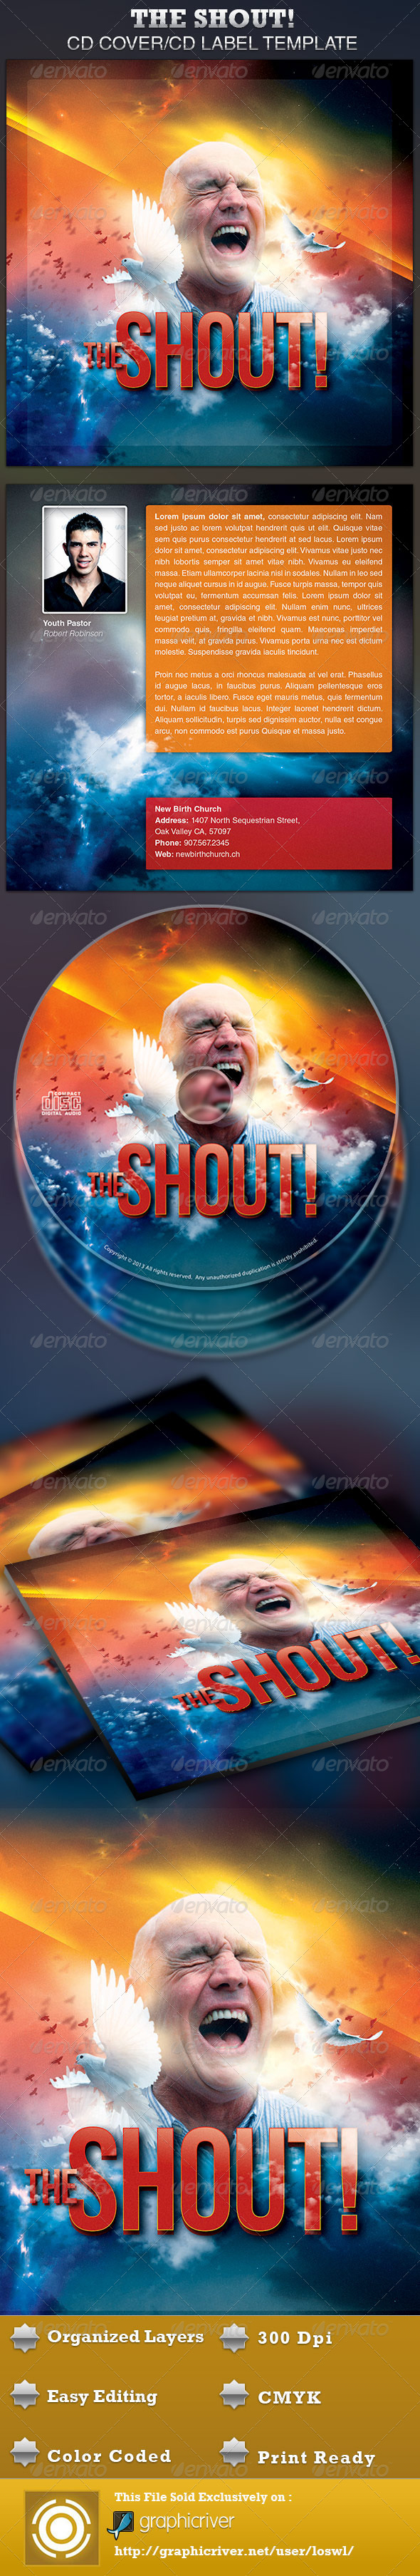 GraphicRiver The Shout CD Artwork Template 4114153